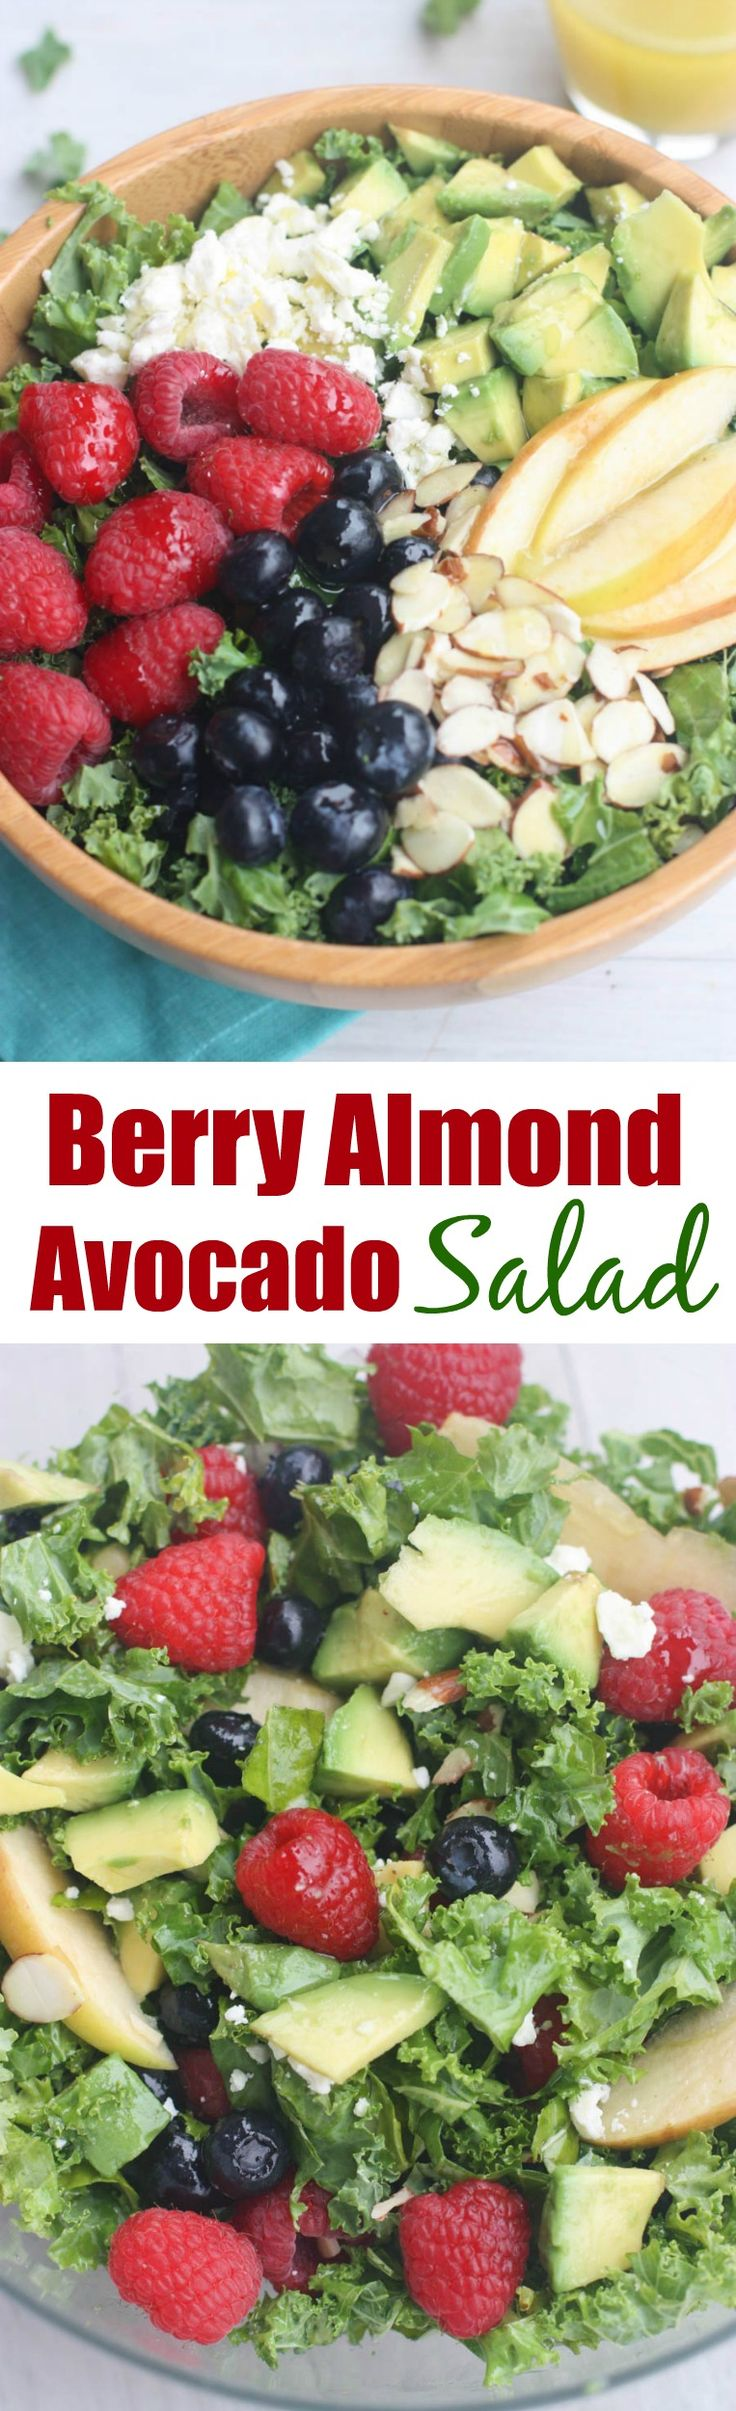 Berry Almond Avocado Salad with a light honey lime poppyseed dressing. | Tastes Better From Scratch